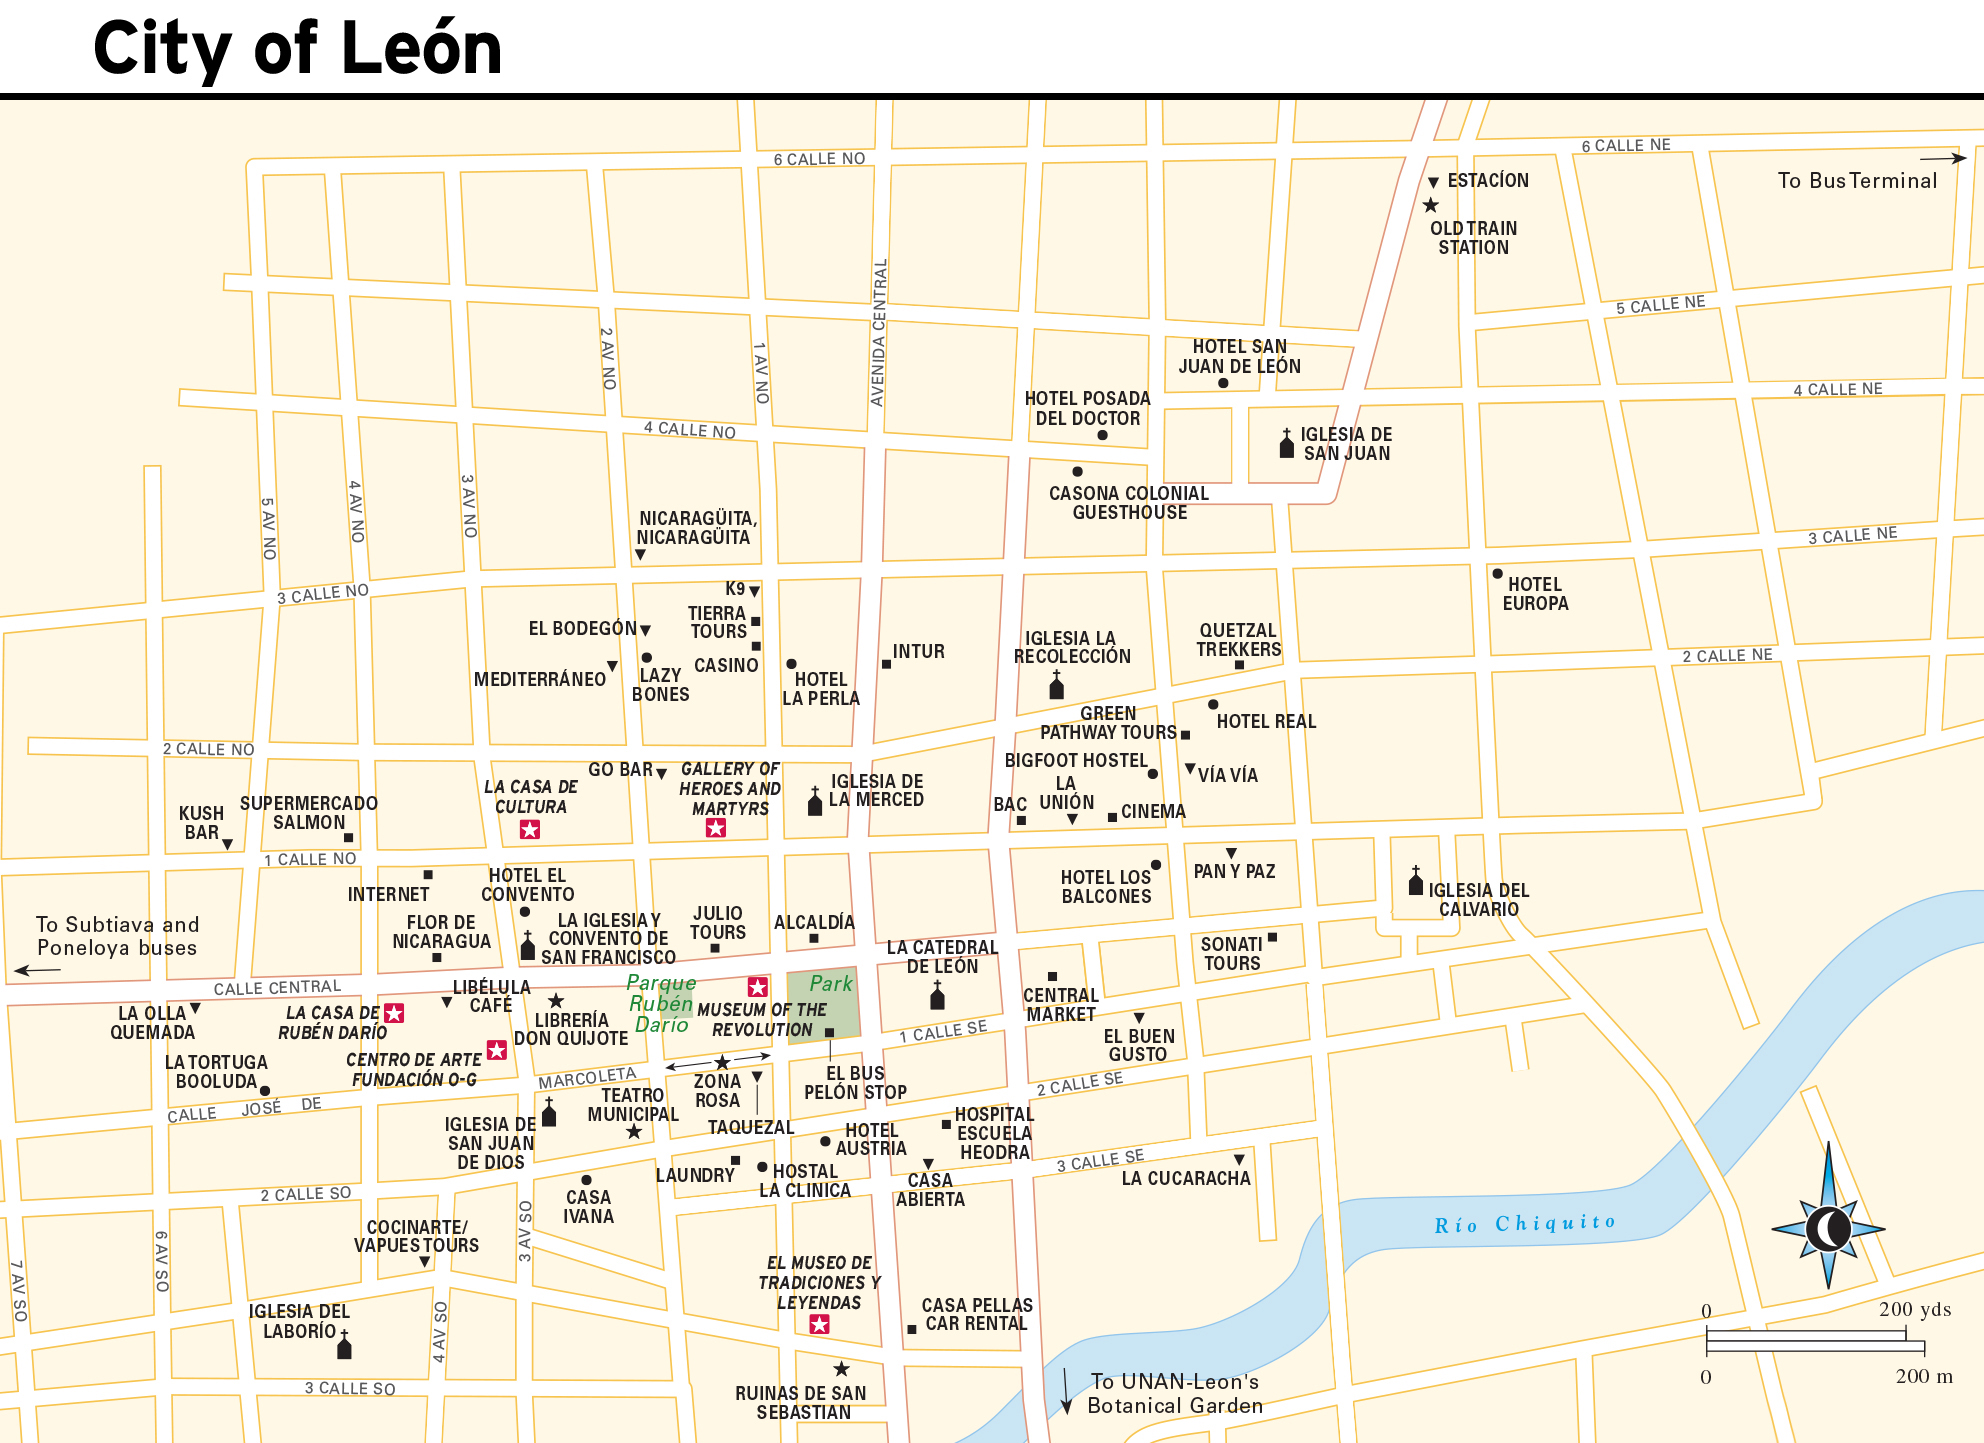 Large Leon Maps For Free Download And Print High Resolution And